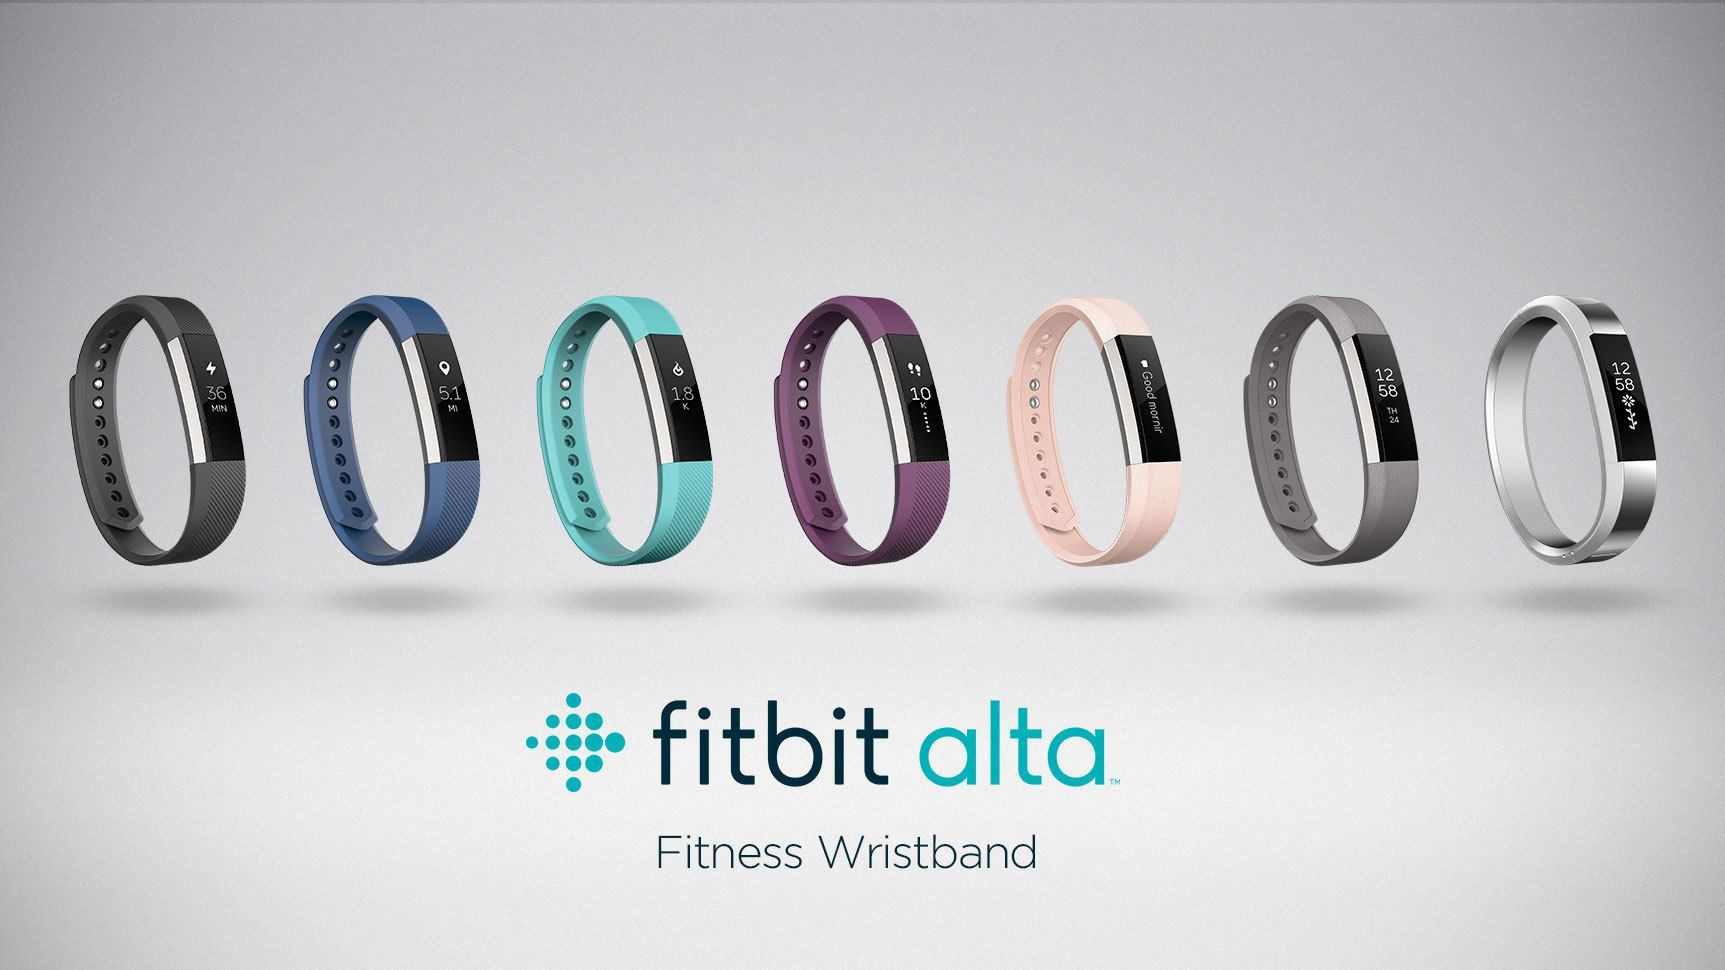 Fitbit Unveils Fitness Wristband, Fitbit Alta